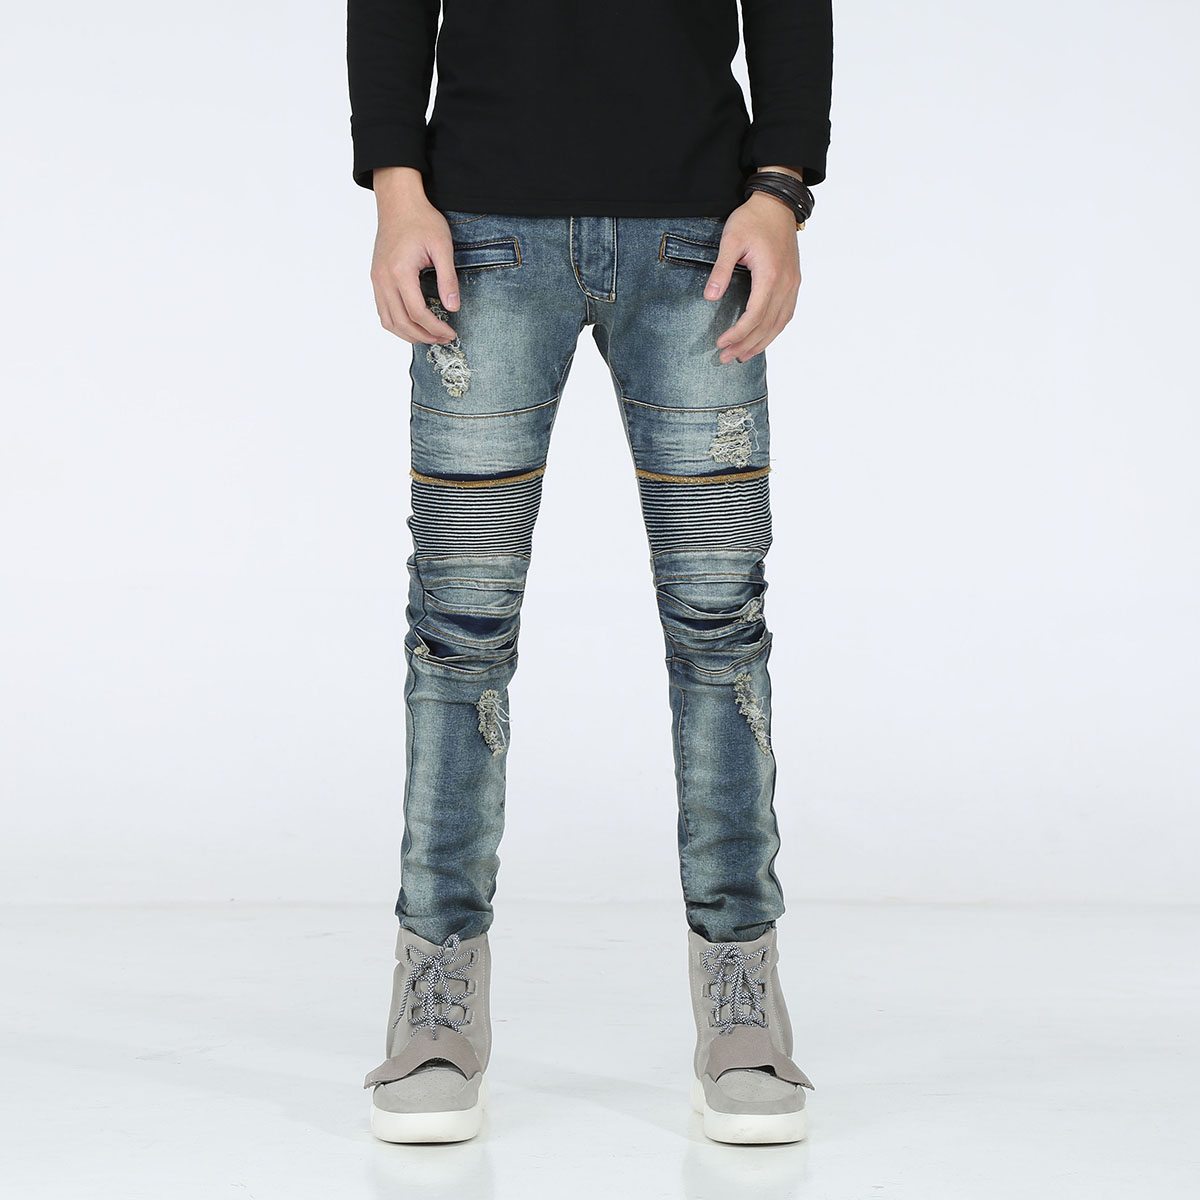 New Distressed Biker Jeans Men High Quality Fashion Mens Casual Slim Elastic Straight Denim Jeans Skinny Jeans Men Pants 29-42 2016 new dsel brand men jeans men fashion skinny jeans men men straight fit leisure quality cotton biker jeans denim